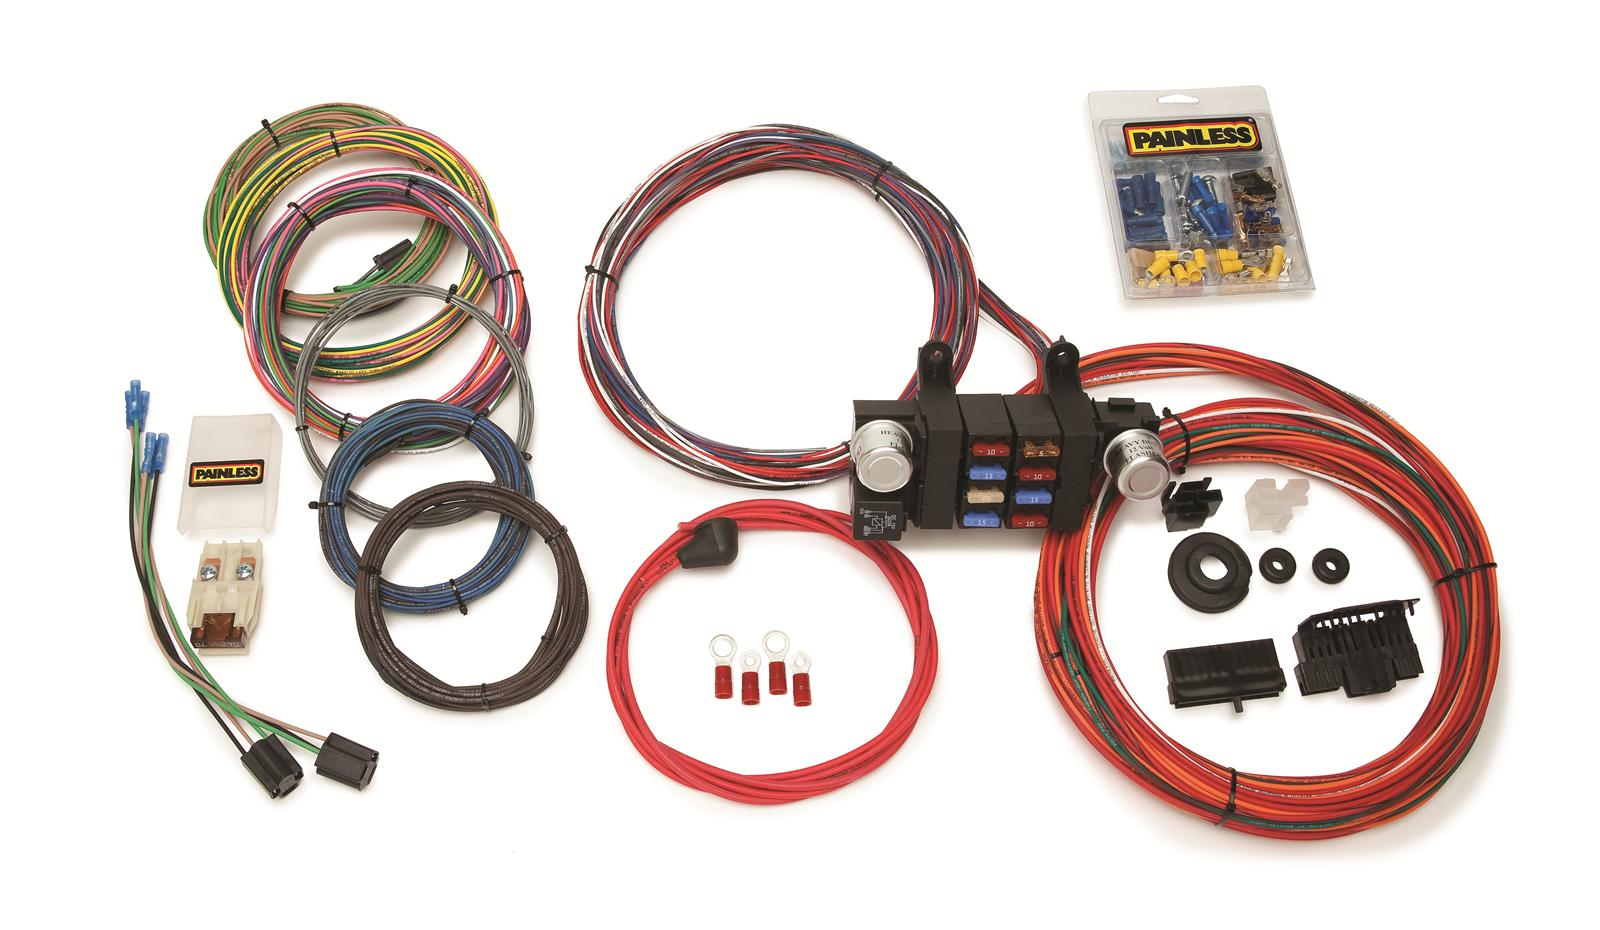 hight resolution of painless performance 18 circuit modular chassis harnesses 10308 free shipping on orders over 99 at summit racing